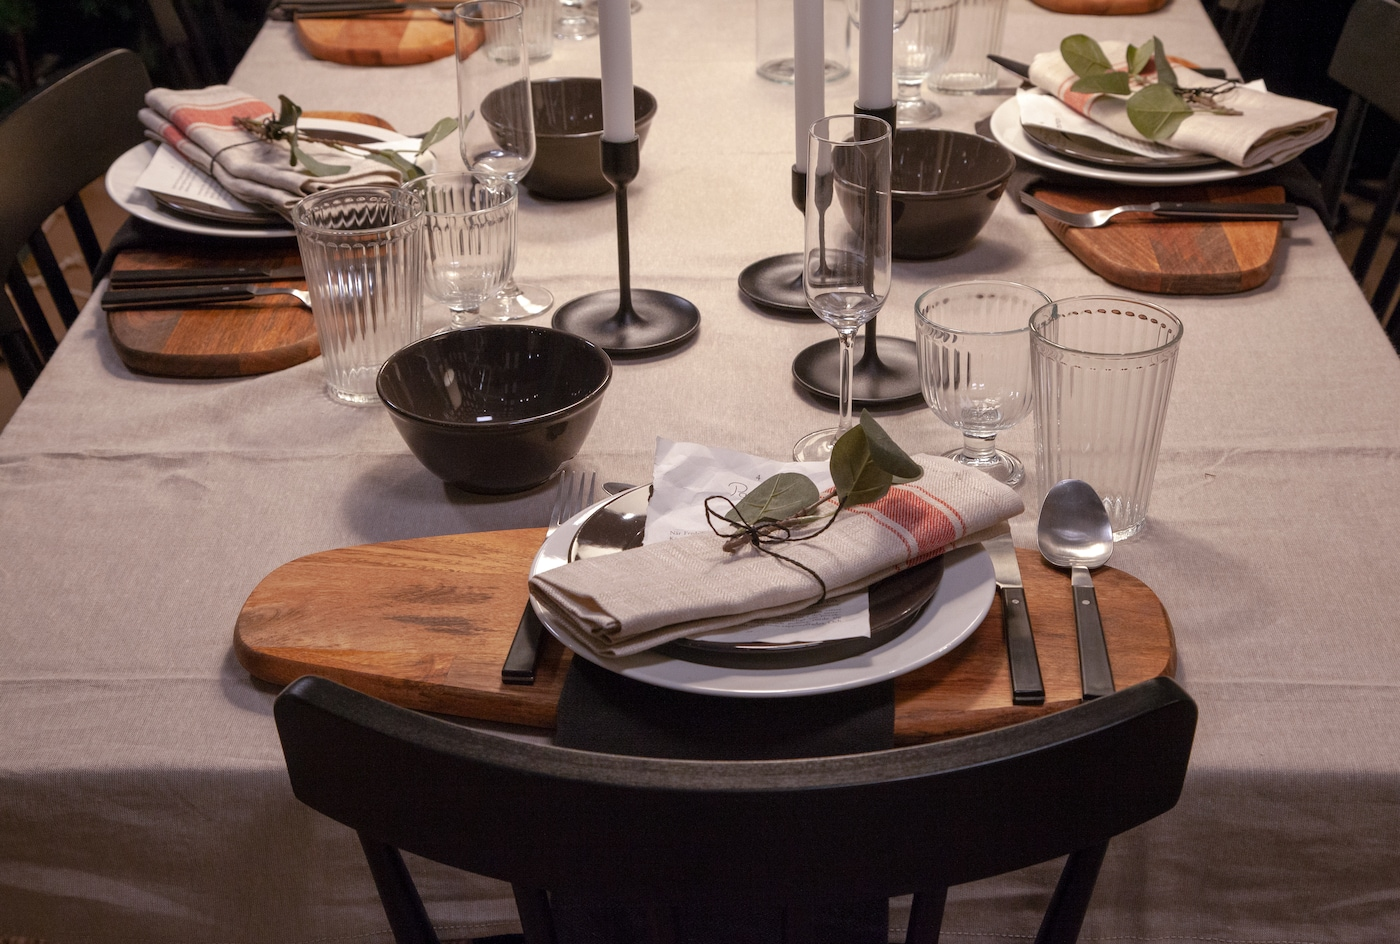 Decorating your Christmas dinner table